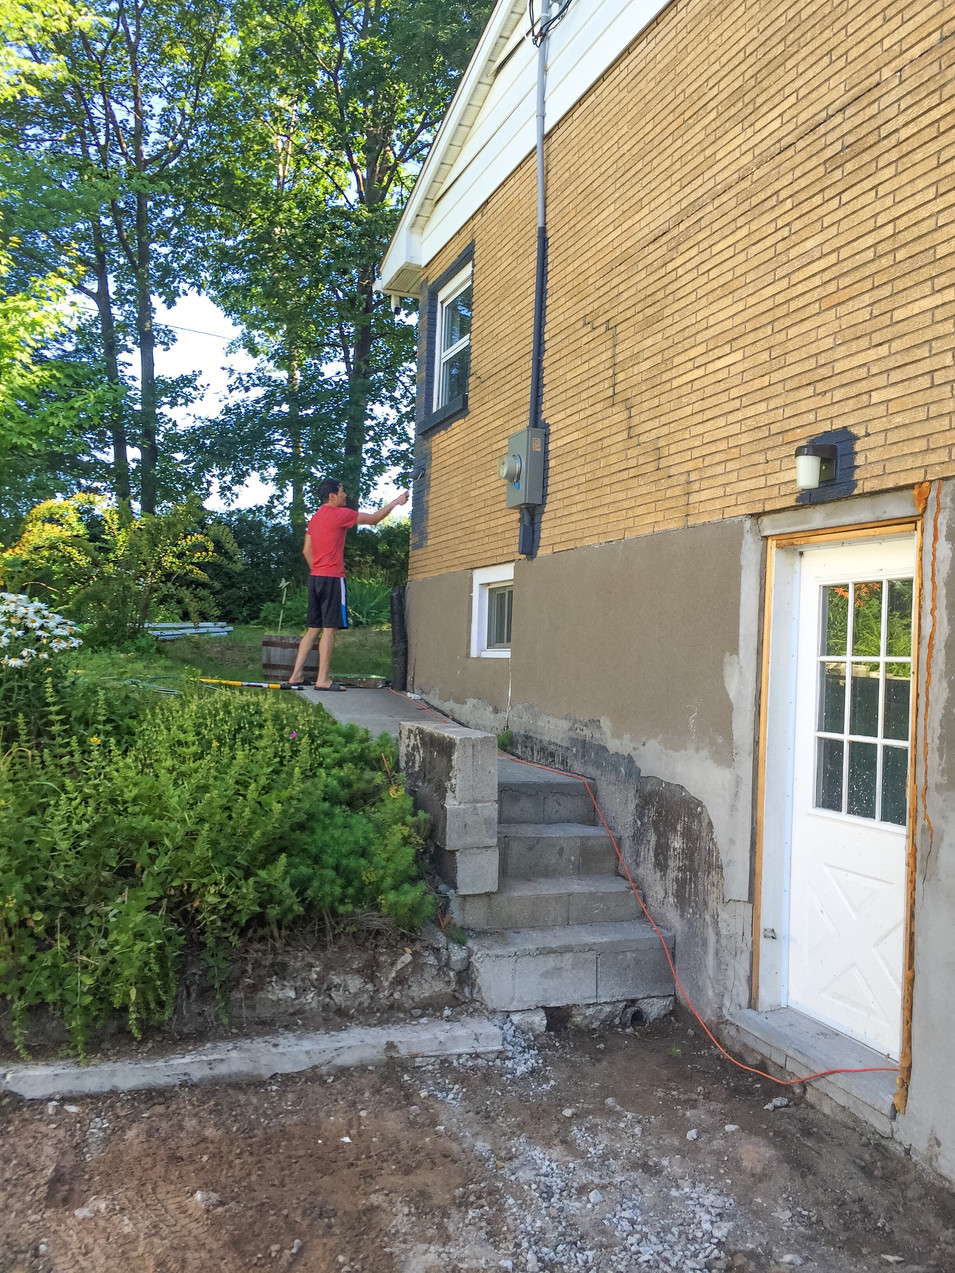 Starting to paint! we tried using masonry rollers but quickly switched to spraying the paint instead.